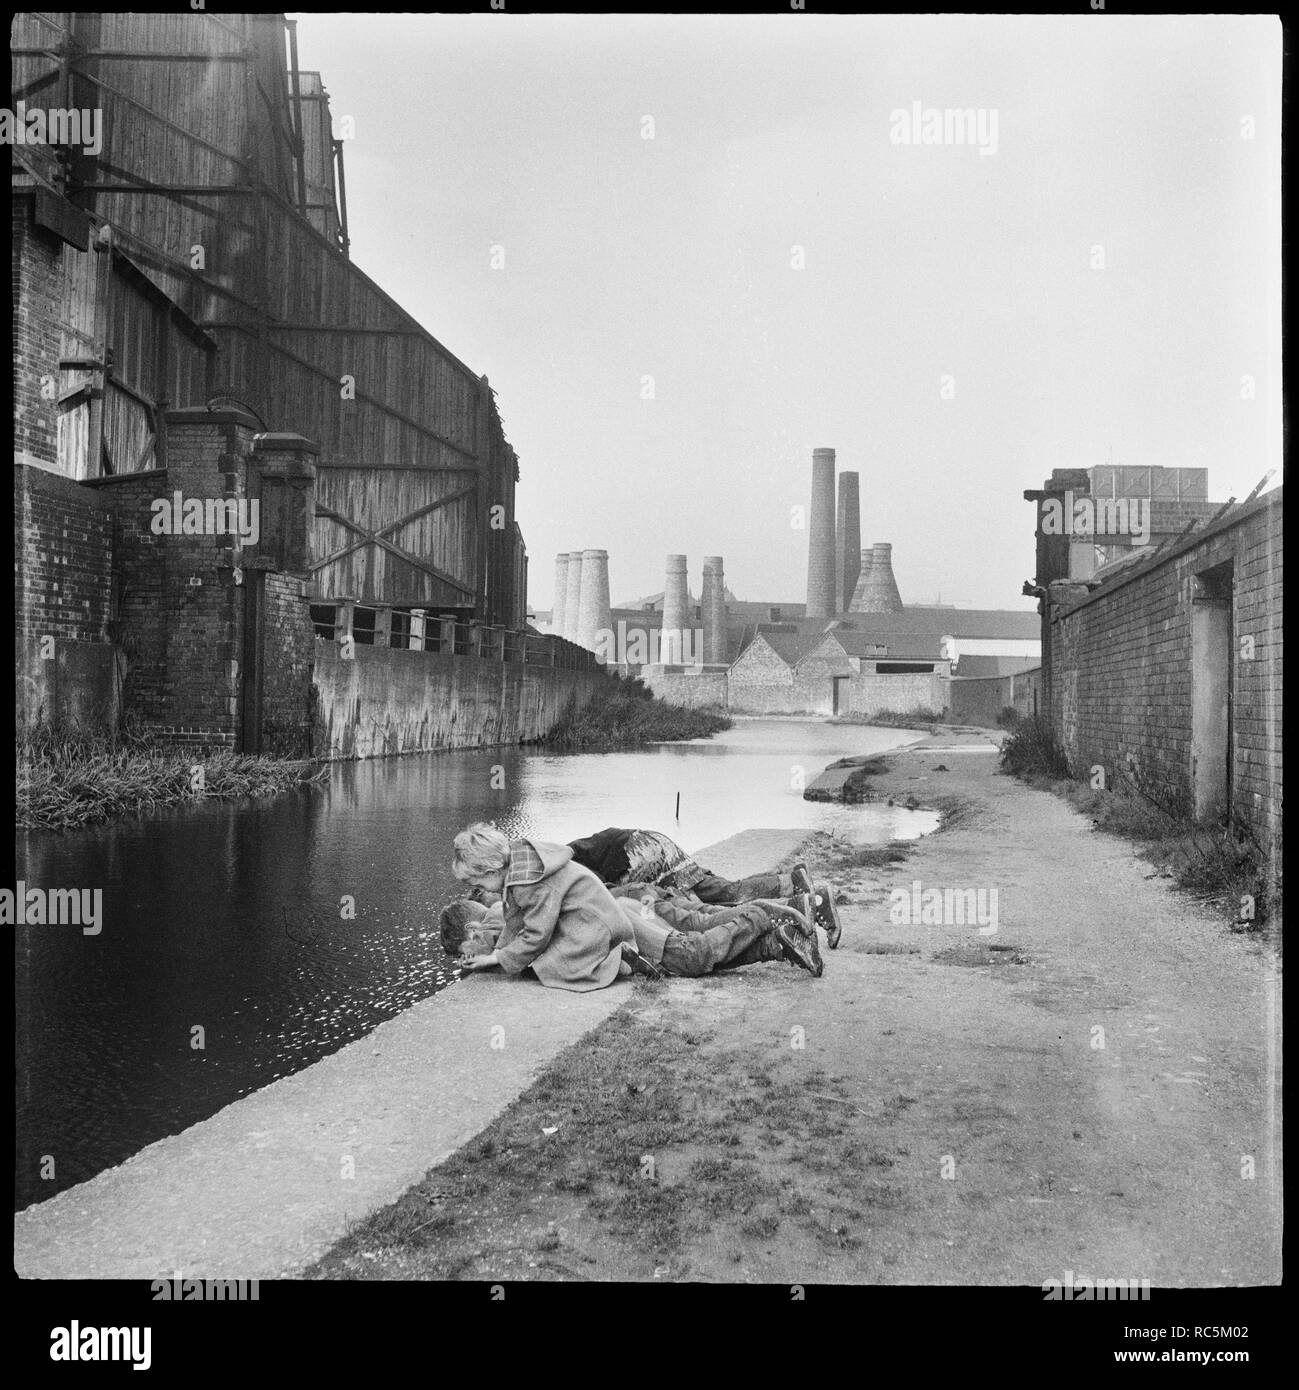 Caldon Canal, Joiner's Square, Hanley, Stoke-on-Trent, Staffordshire, 1965-1968. Children lying on the towpath looking into the waters of the Caldon Canal opposite the Electricity Works with Trent Works and Westwood Mills in the background. - Stock Image